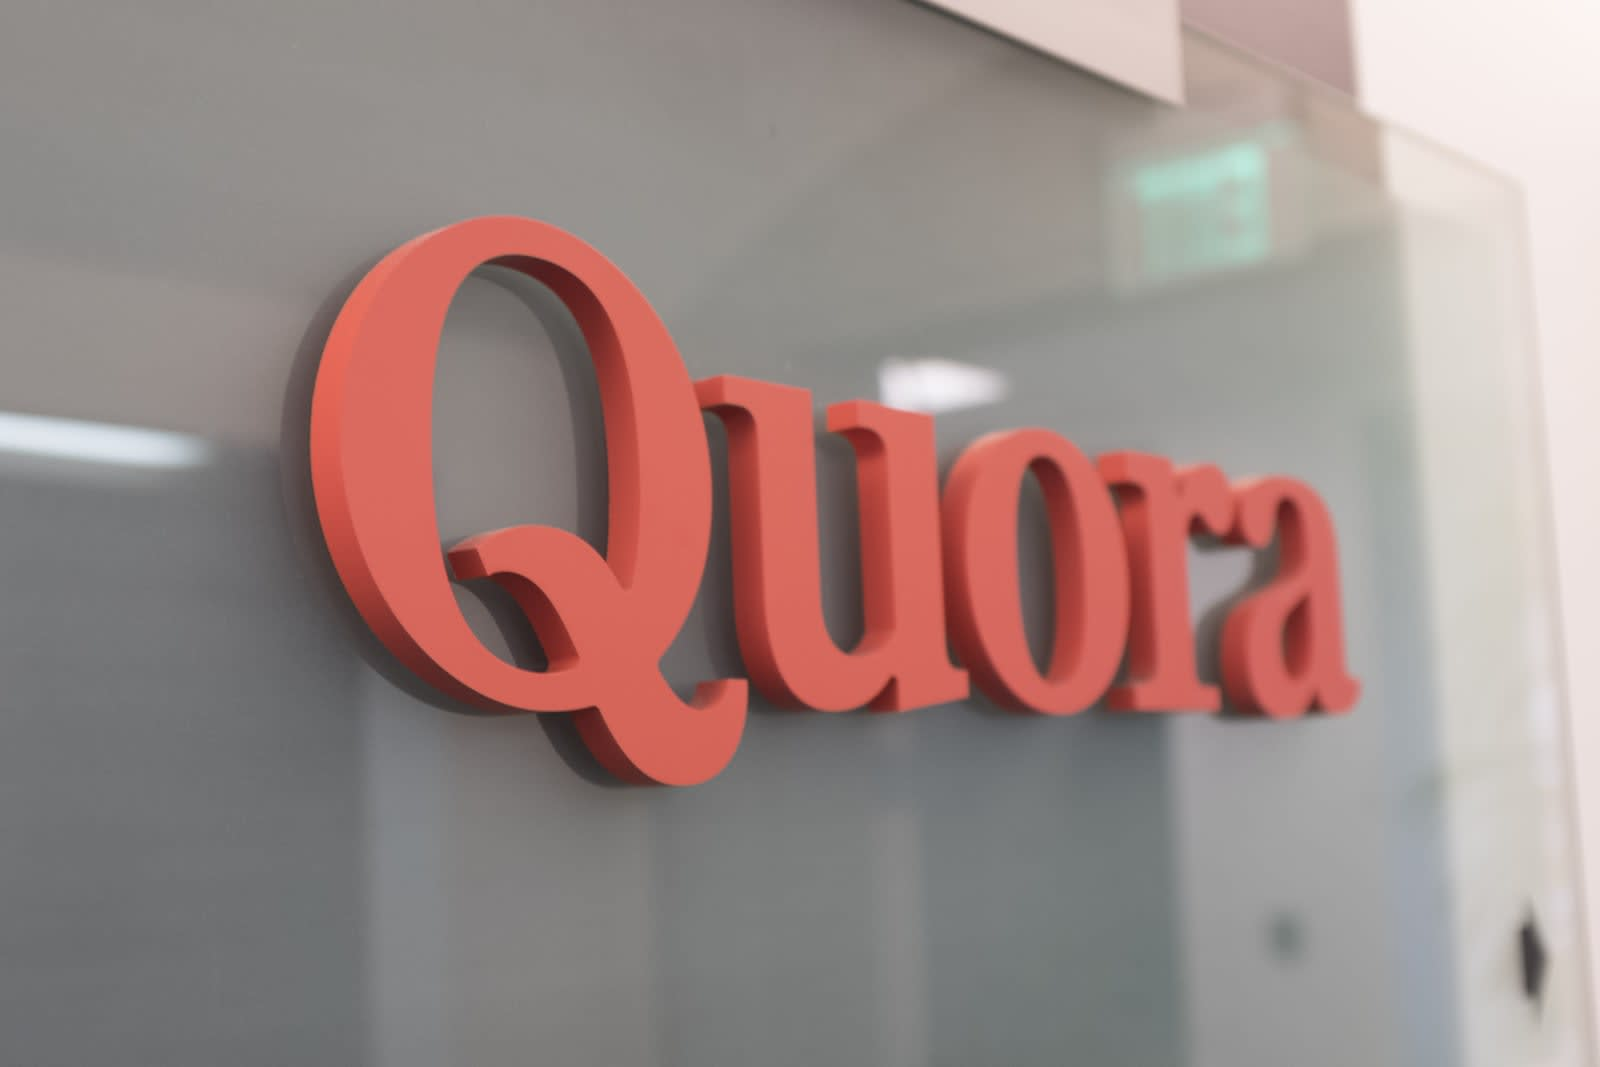 Image result for Didn't know you had a Quora account? The latest internet data breach appears to surprise many